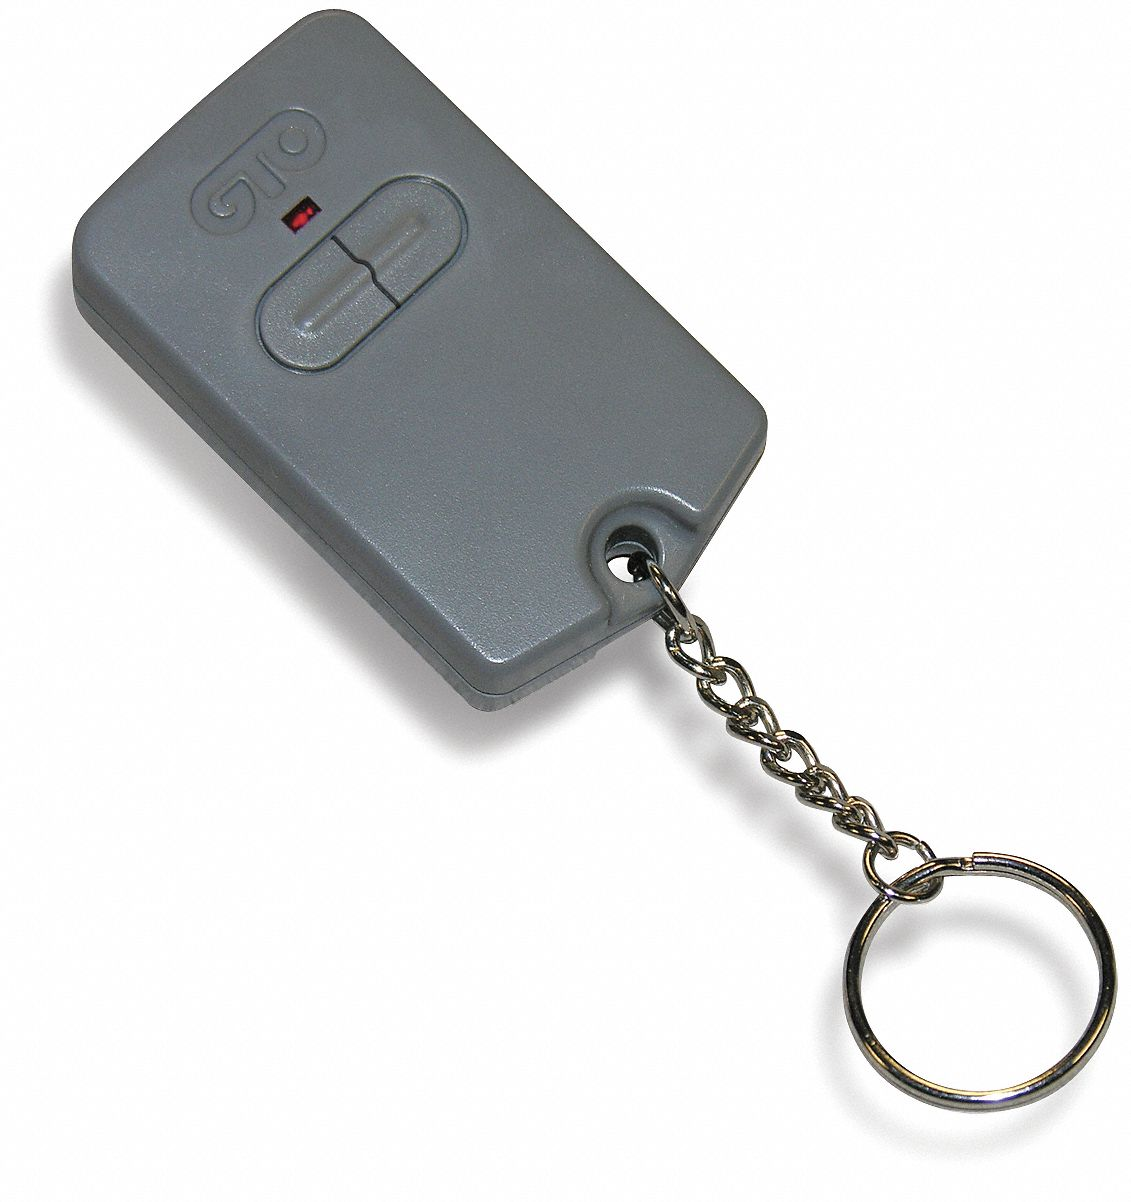 Dual Button Key Chain Transmitter